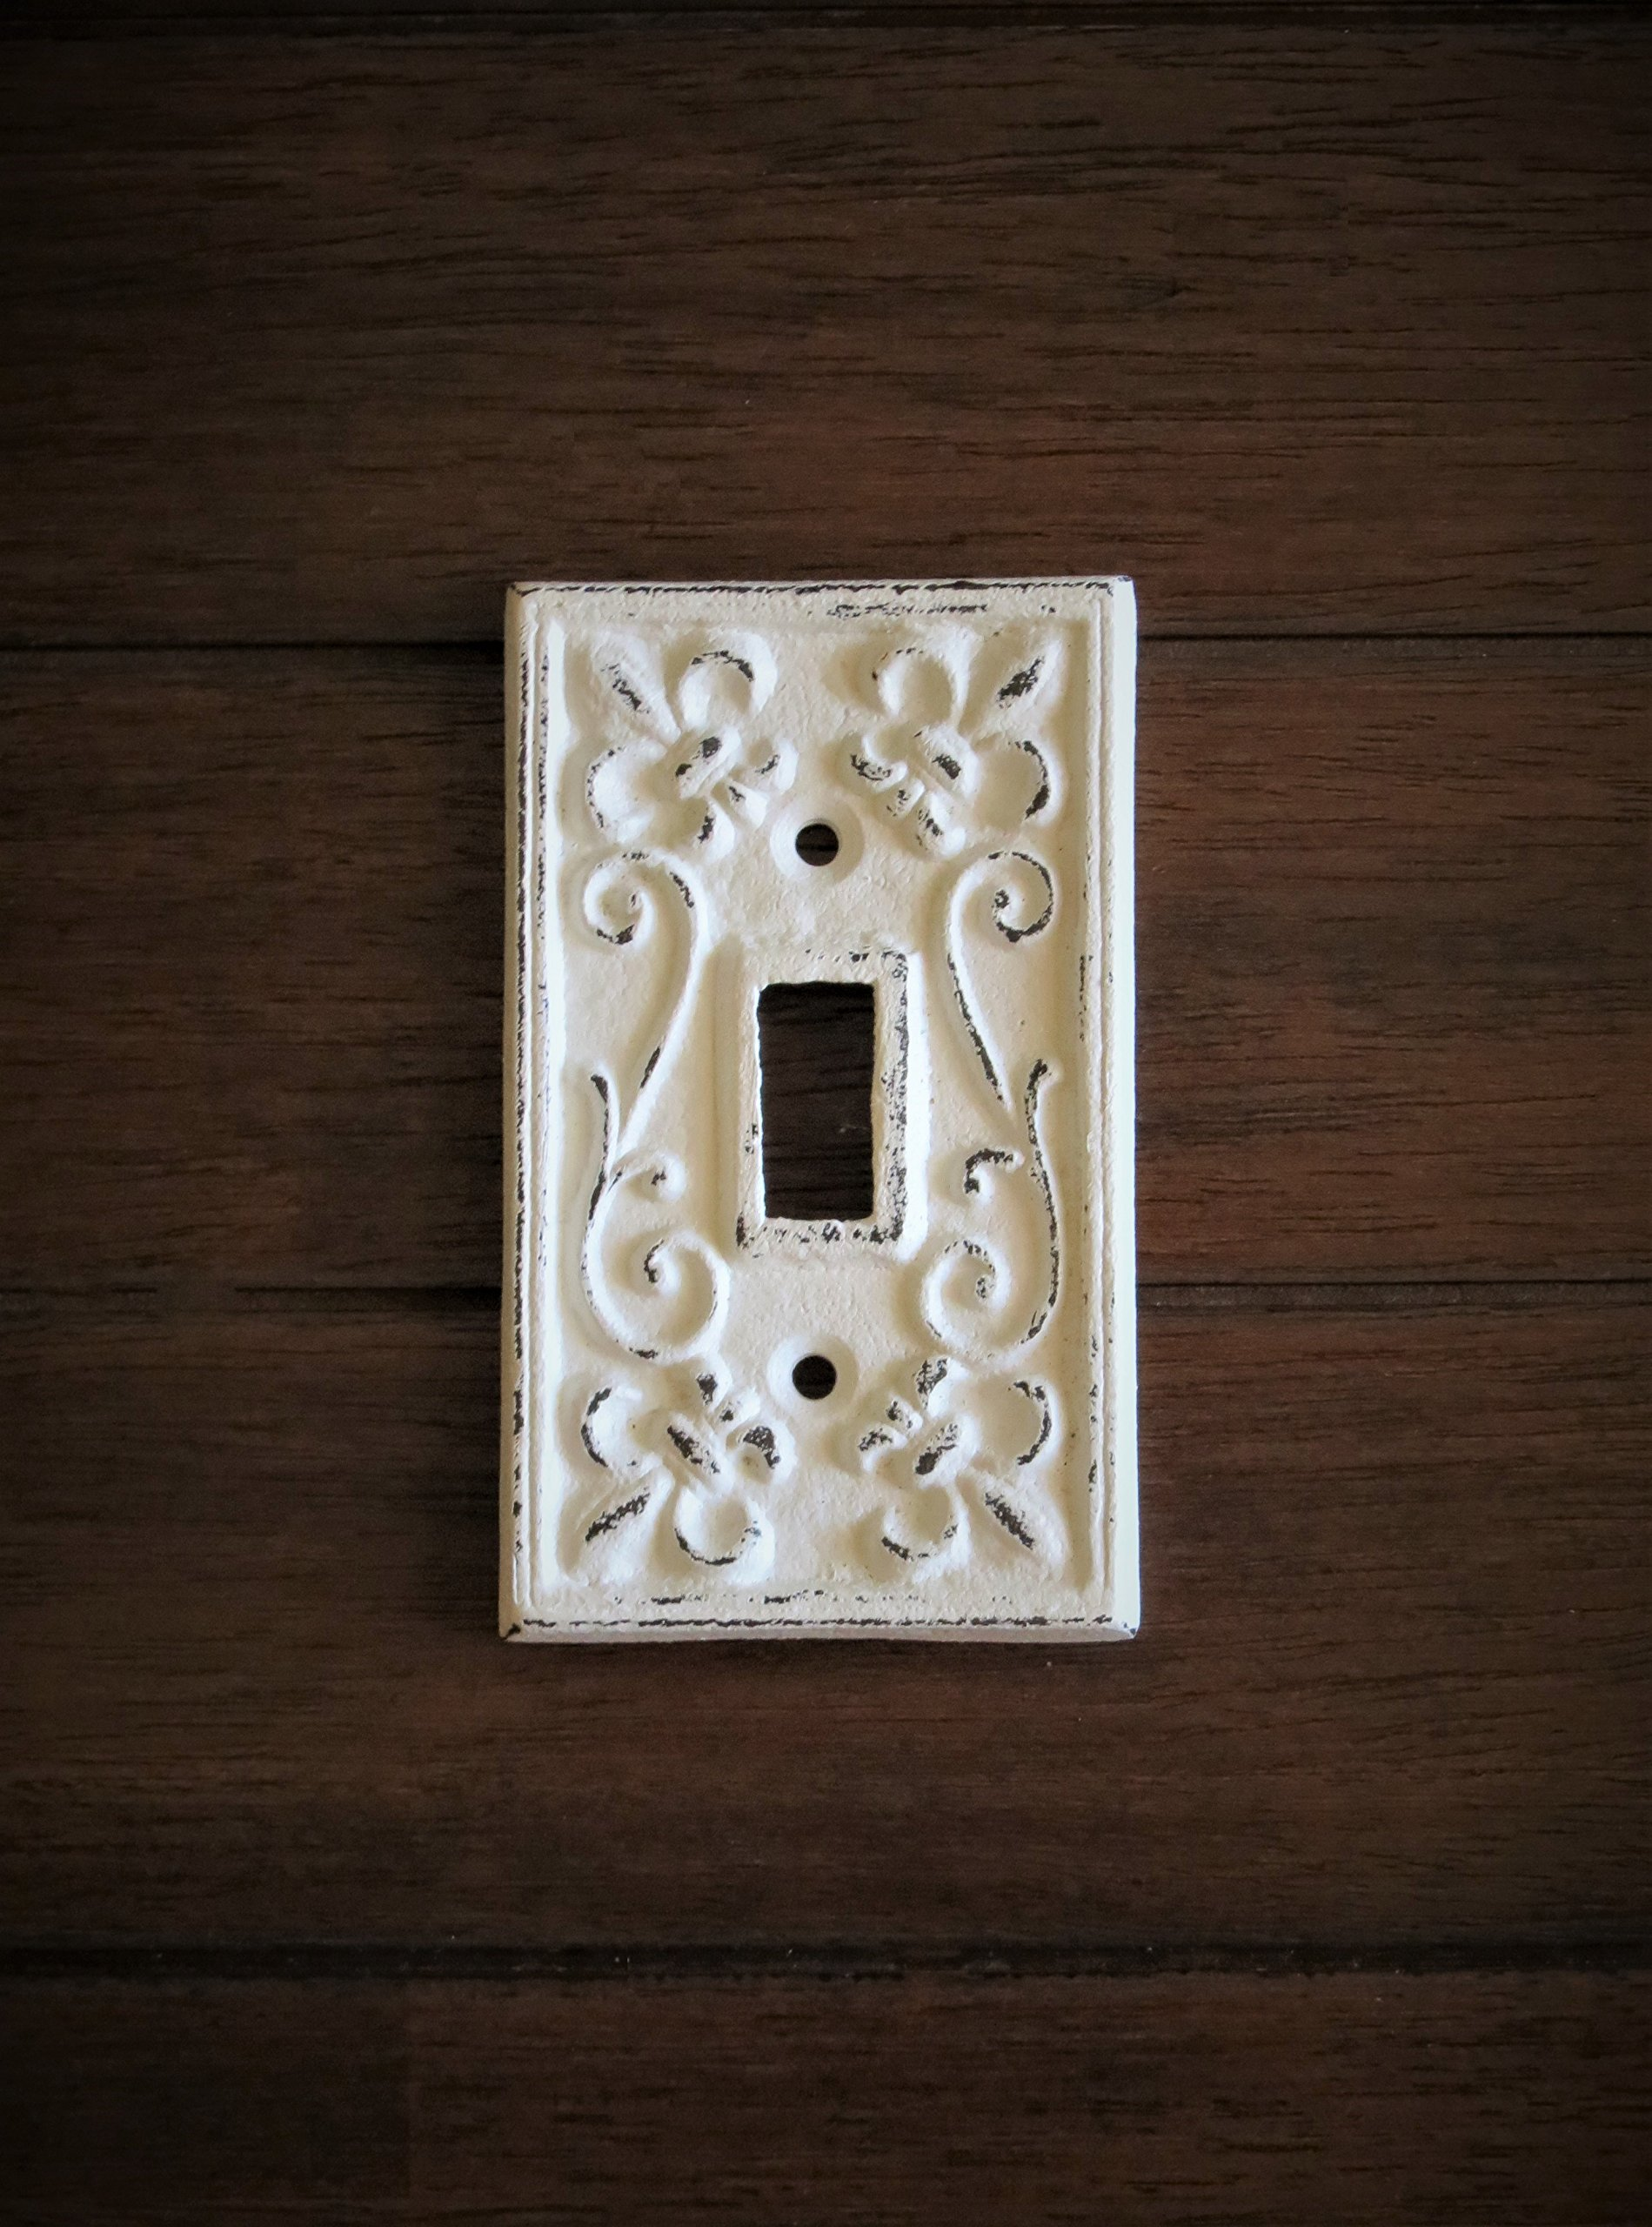 Single Light Switch Cover/ Light Plate Cover / Cast Iron Plate/ Fleur de Lis Design/ Antique White or Pick Your Color